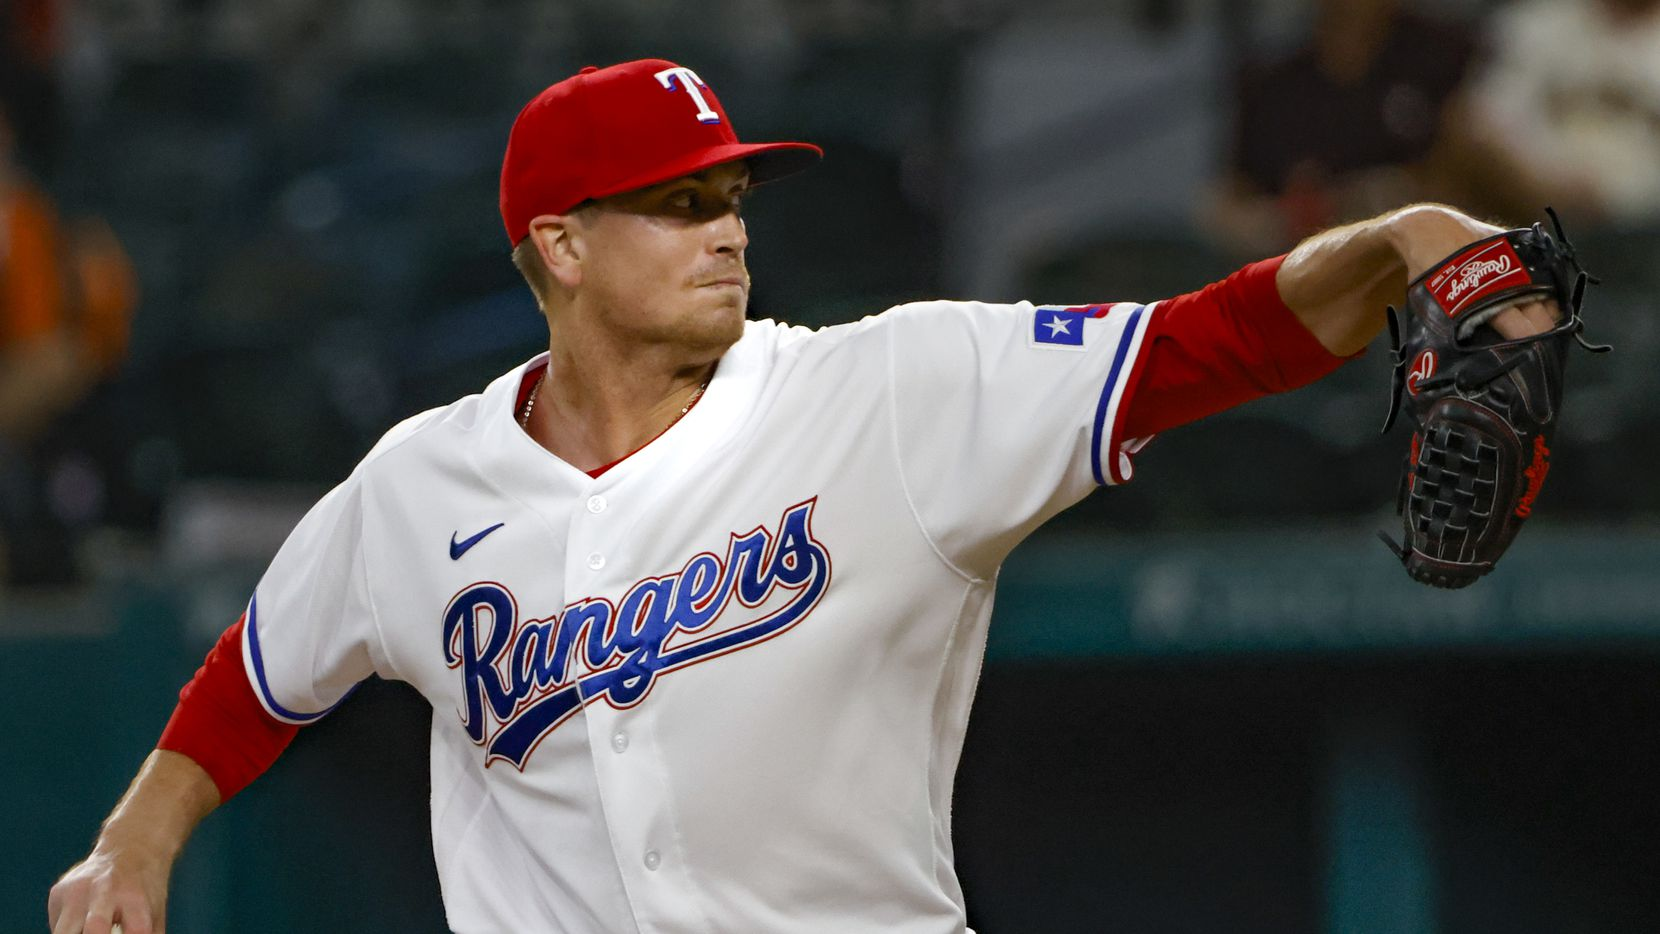 Texas Rangers starting pitcher Kyle Gibson (44) pitches during the first inning at Globe Life Field in Arlington, Texas, in Dallas on Wednesday, June 9, 2021.